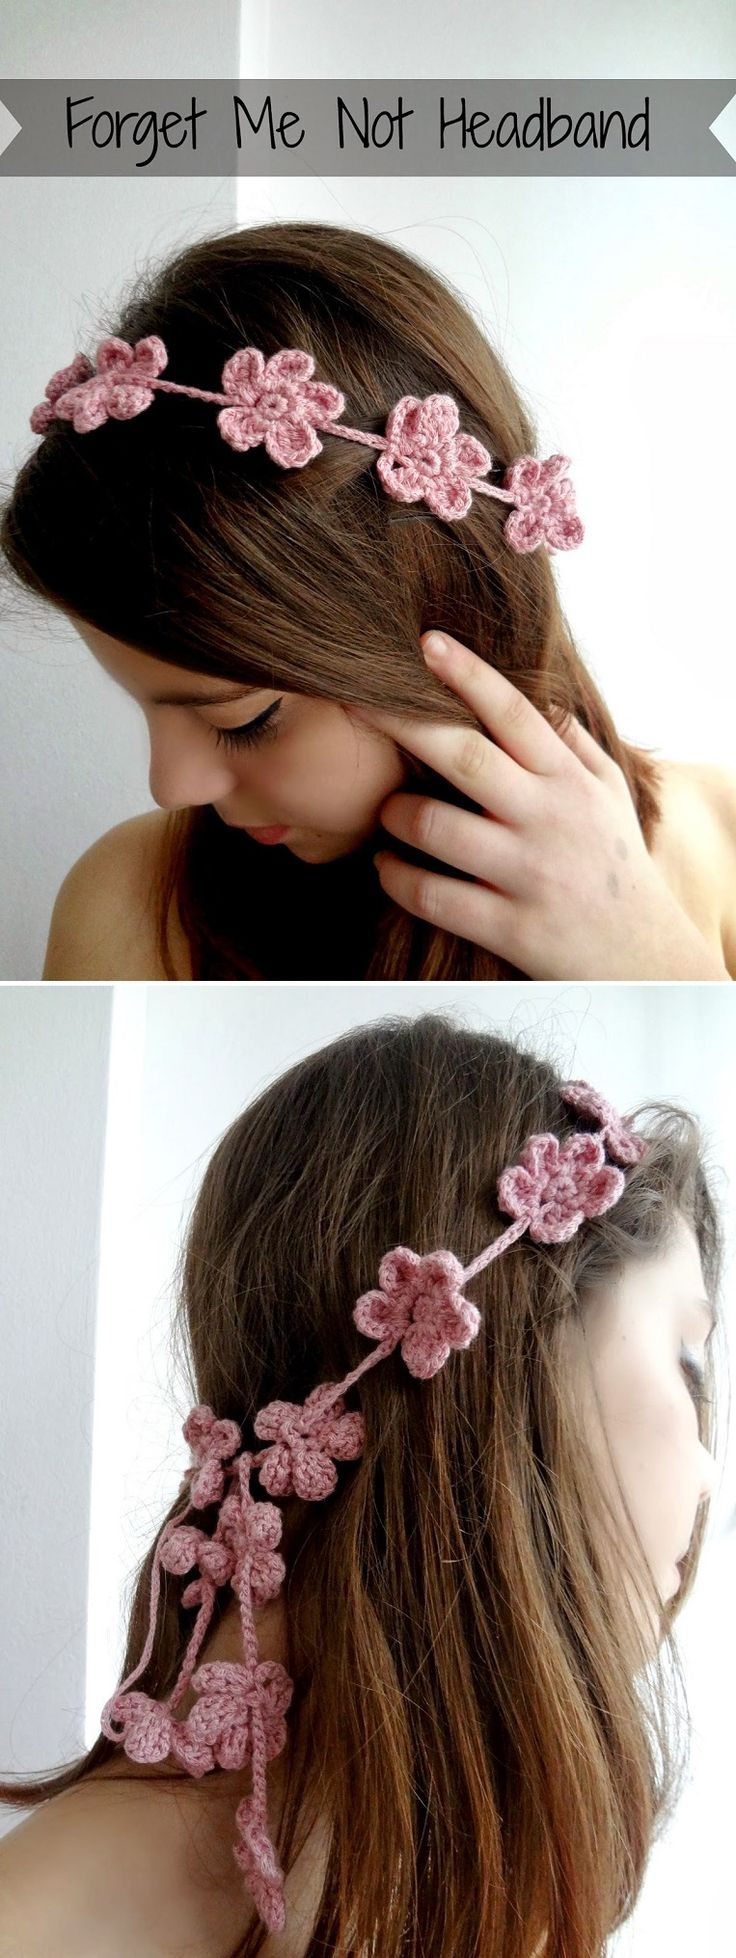 Forget Me Not Headband – Free Tutorial - 16 Easy and Free Crochet Accessories Patterns | GleamItUp